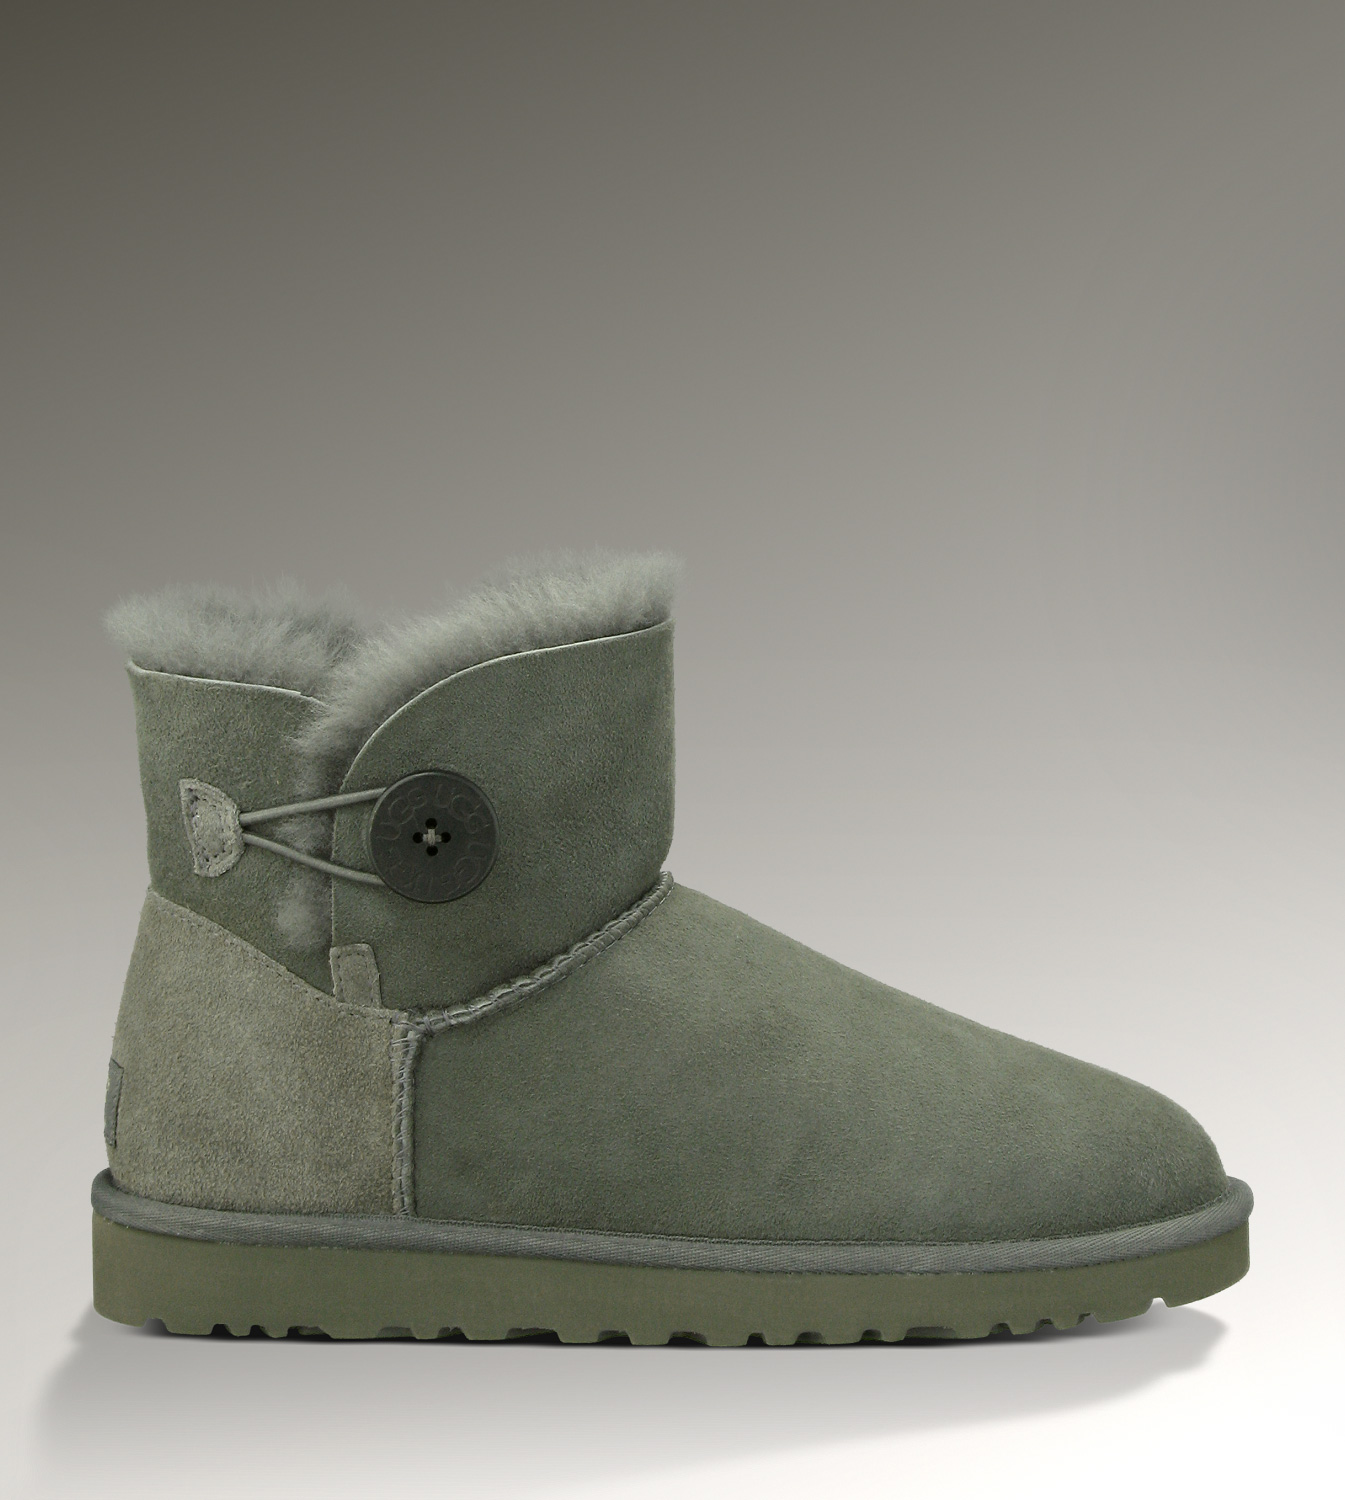 UGG Bailey Button Mini 3352 Grey Boots